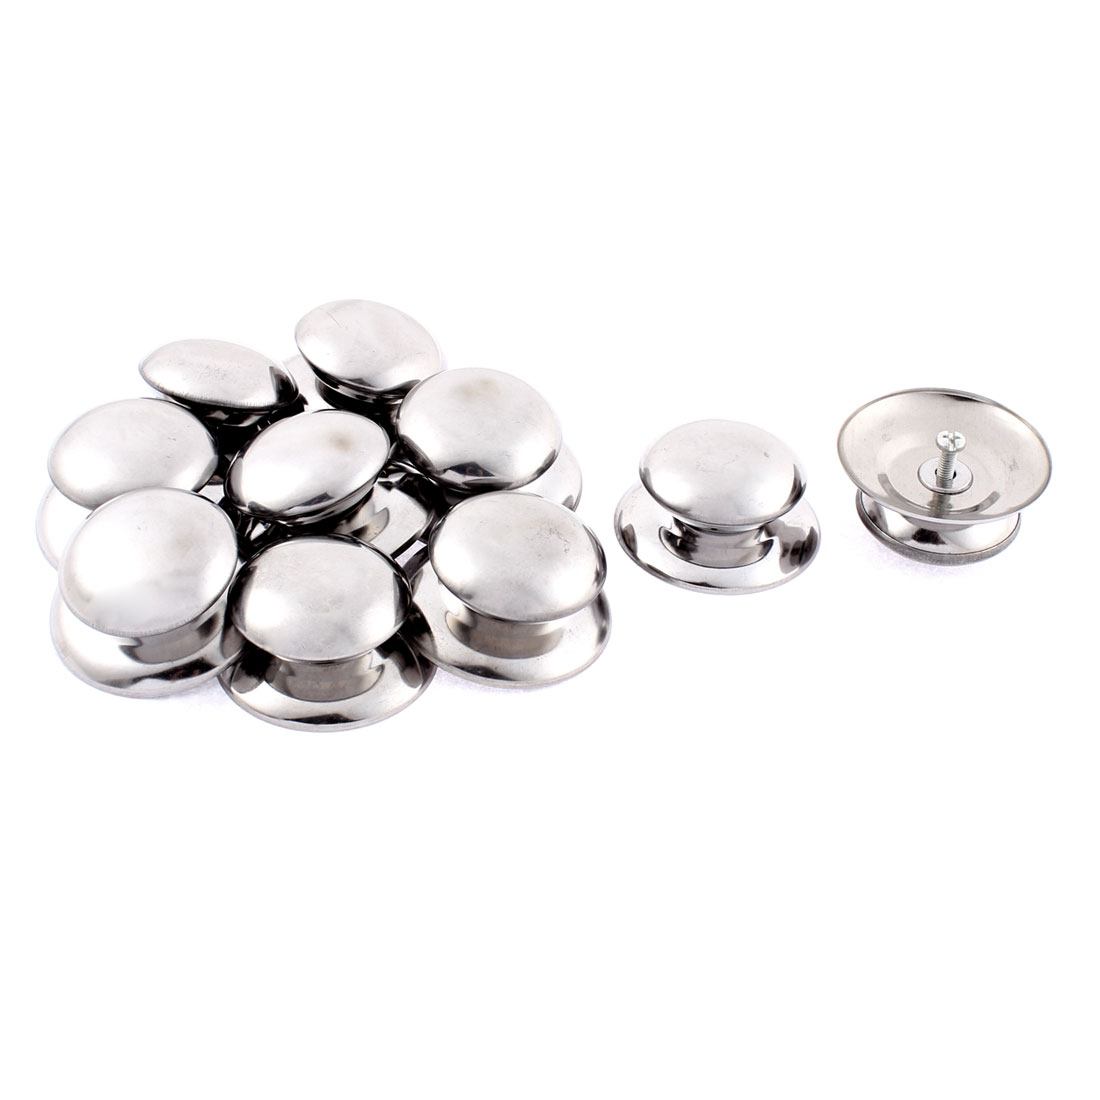 Home Stainless Steel Pan Pot Cover Lid Knob Handle 57mm x 45mm 10 Pcs